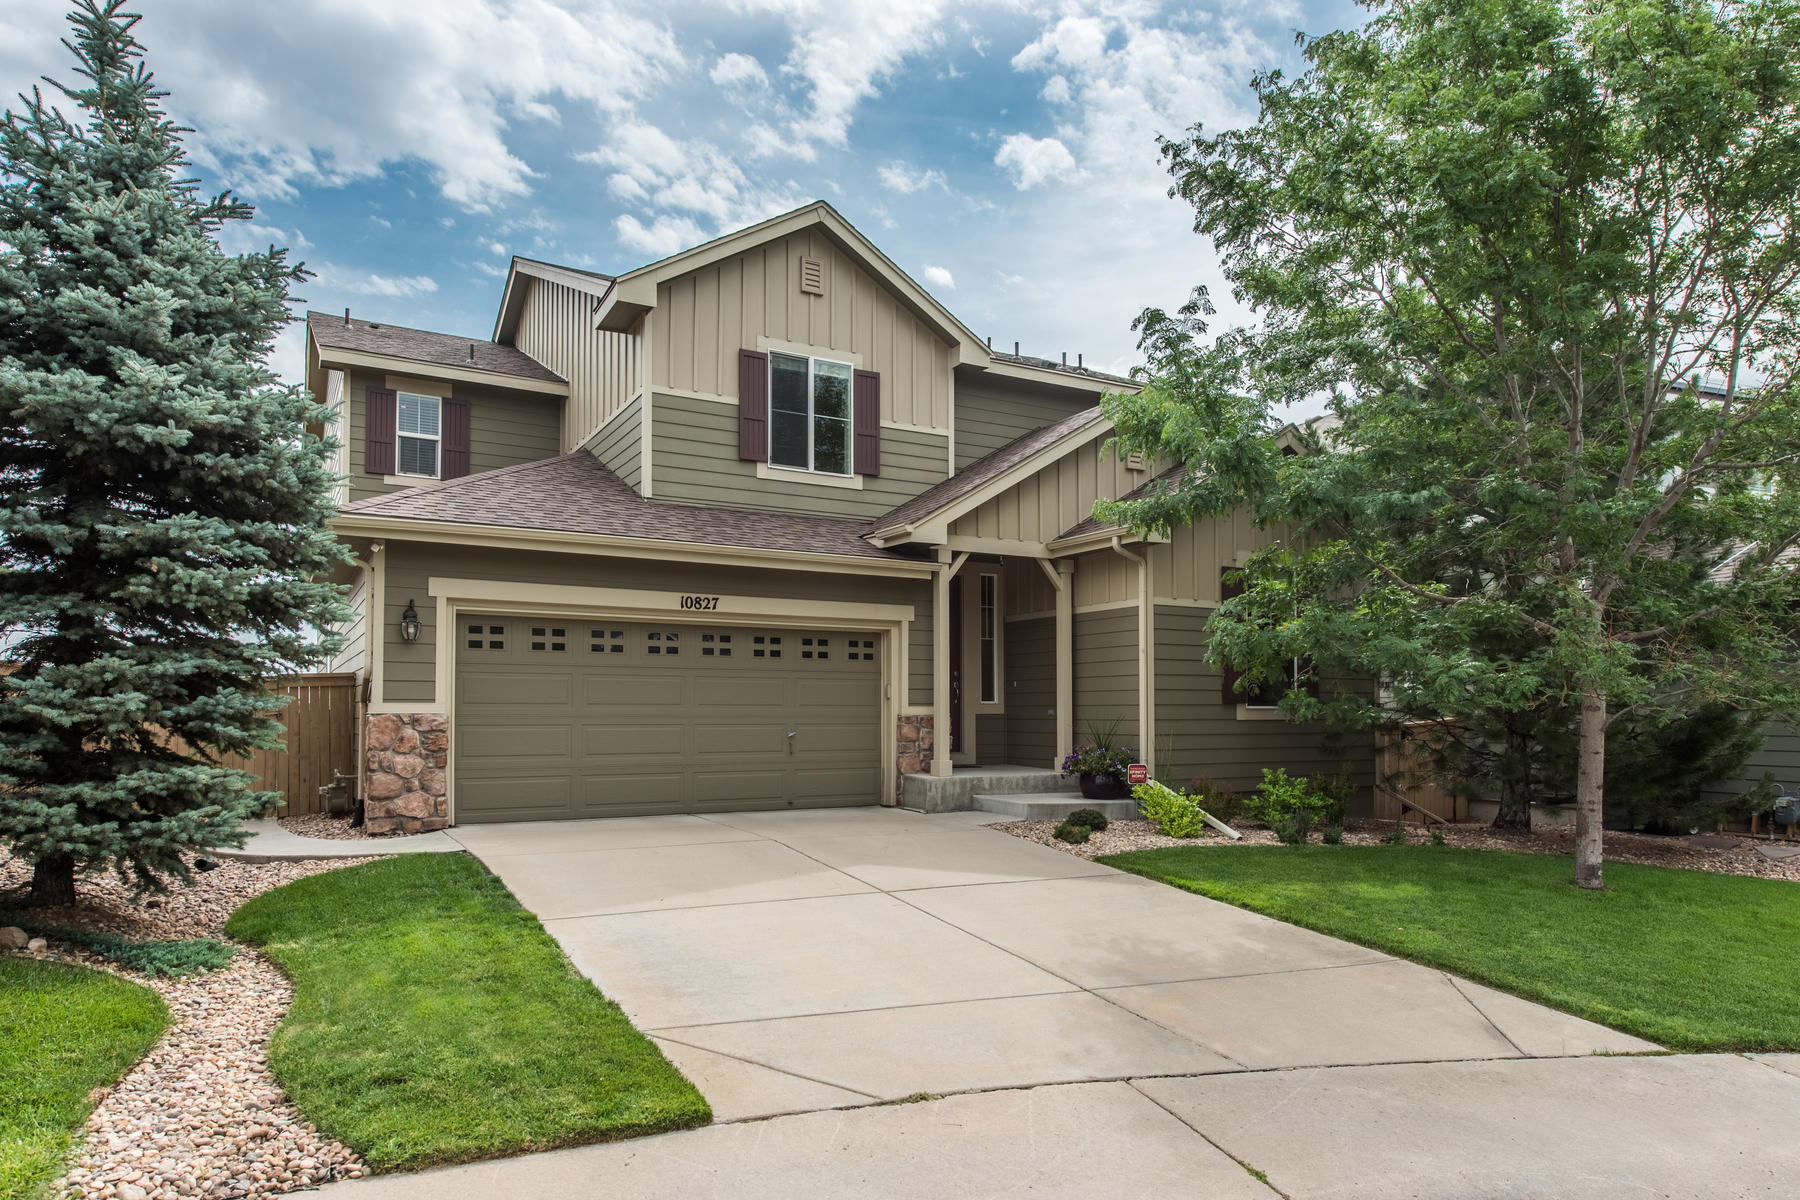 Single Family Home for Active at Cream of the crop 10827 Trotwood Way Highlands Ranch, Colorado 80126 United States